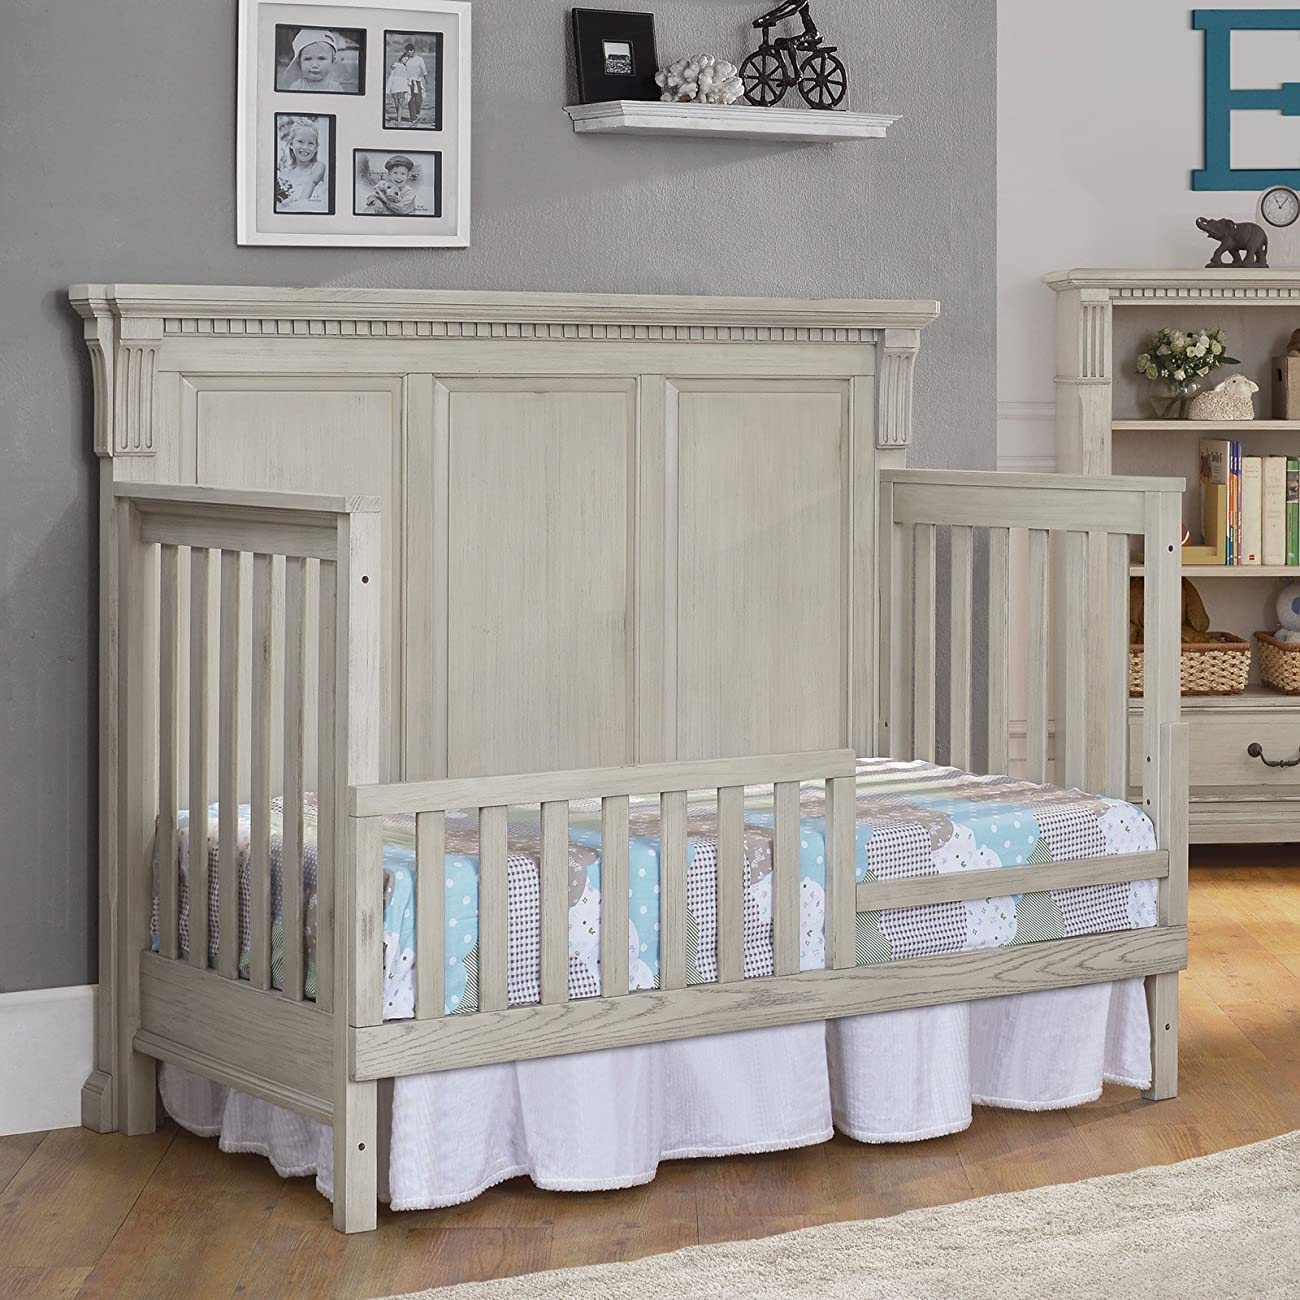 Monbebe Everett 4-in-1 Convertible Crib - Antique 6